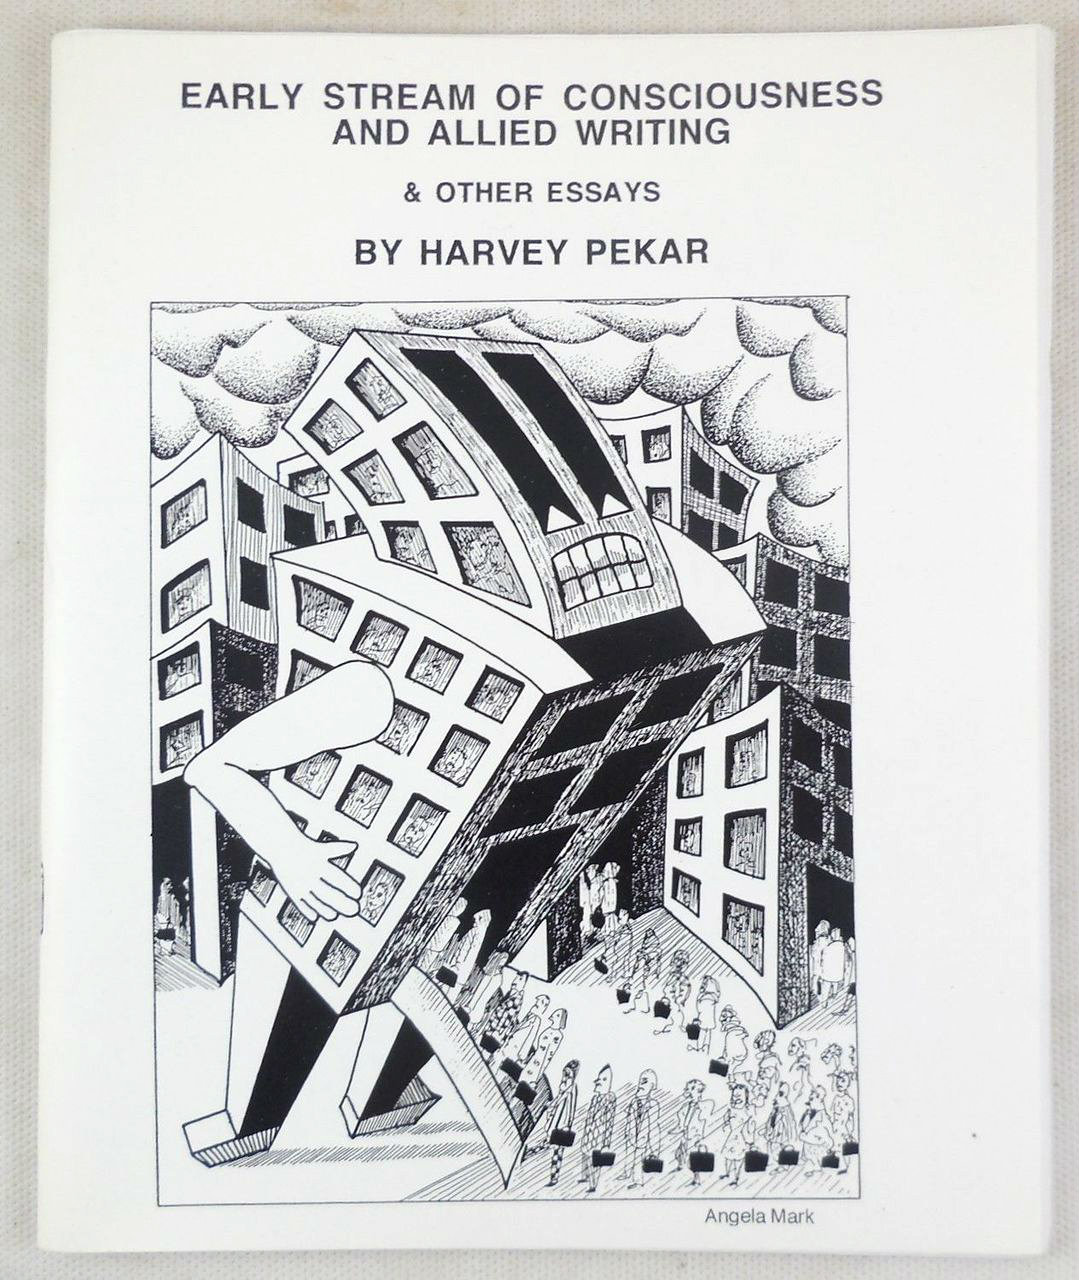 EARLY STREAM OF CONSCIOUSNESS AND ALLIED WRITINGS, by Harvey Pekar - 2004